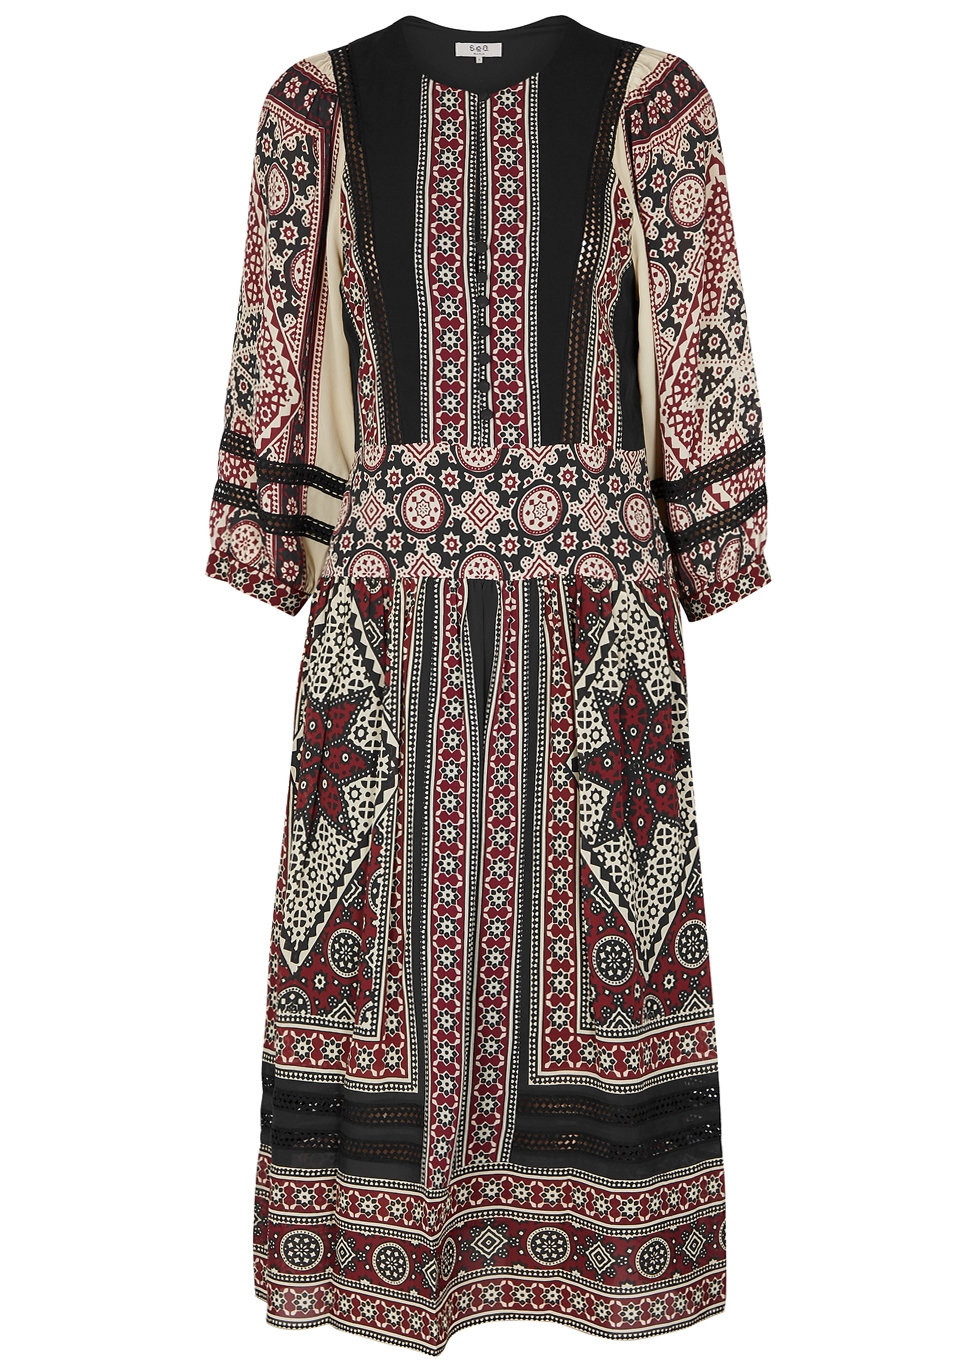 SEA NY Ezri Printed Chiffon Midi Dress in Multicoloured